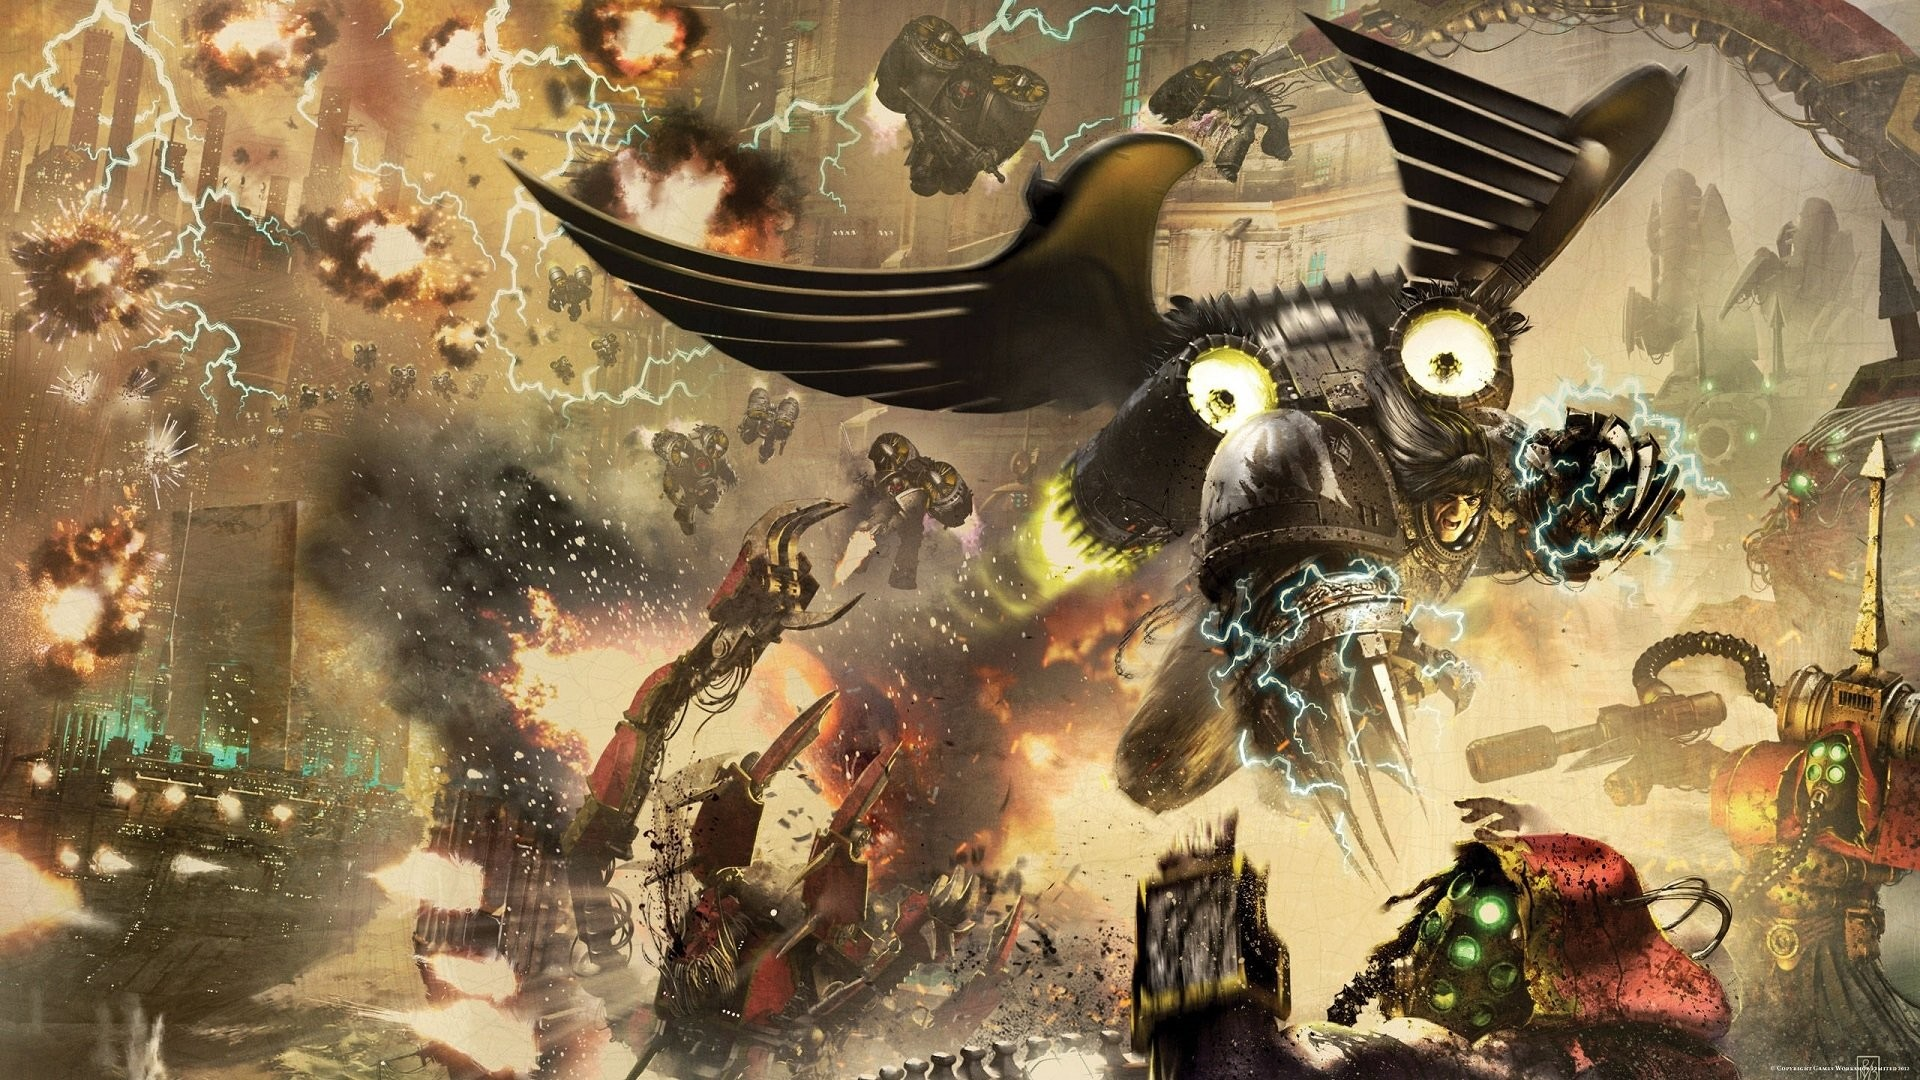 1920x1080 Sci Fi - Horus Heresy Corax: Soulforge Wallpaper